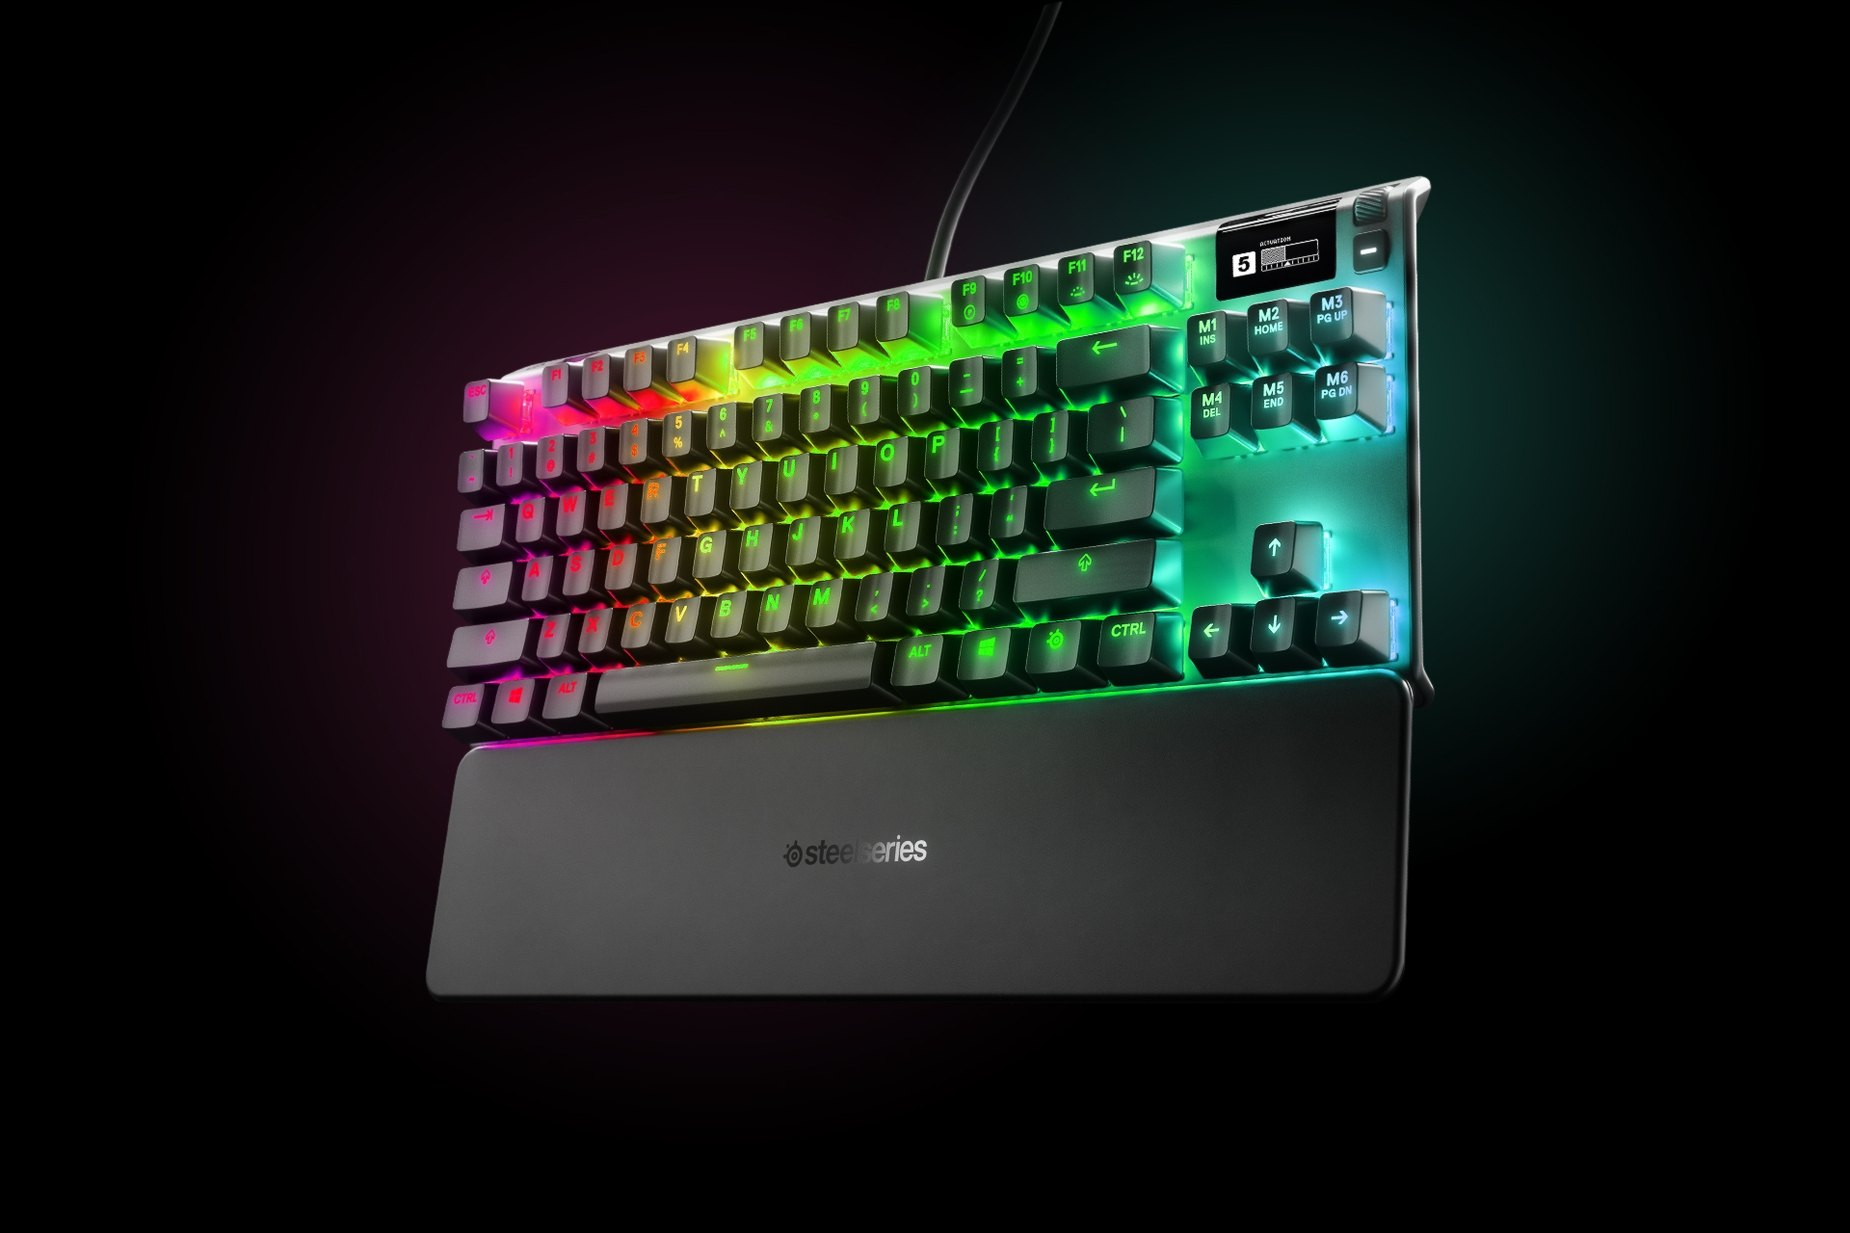 Nordic - Apex Pro TKL gaming keyboard with the illumination lit up on dark background, also shows the OLED screen and controls used to change settings, switch actuation, and adjust audio